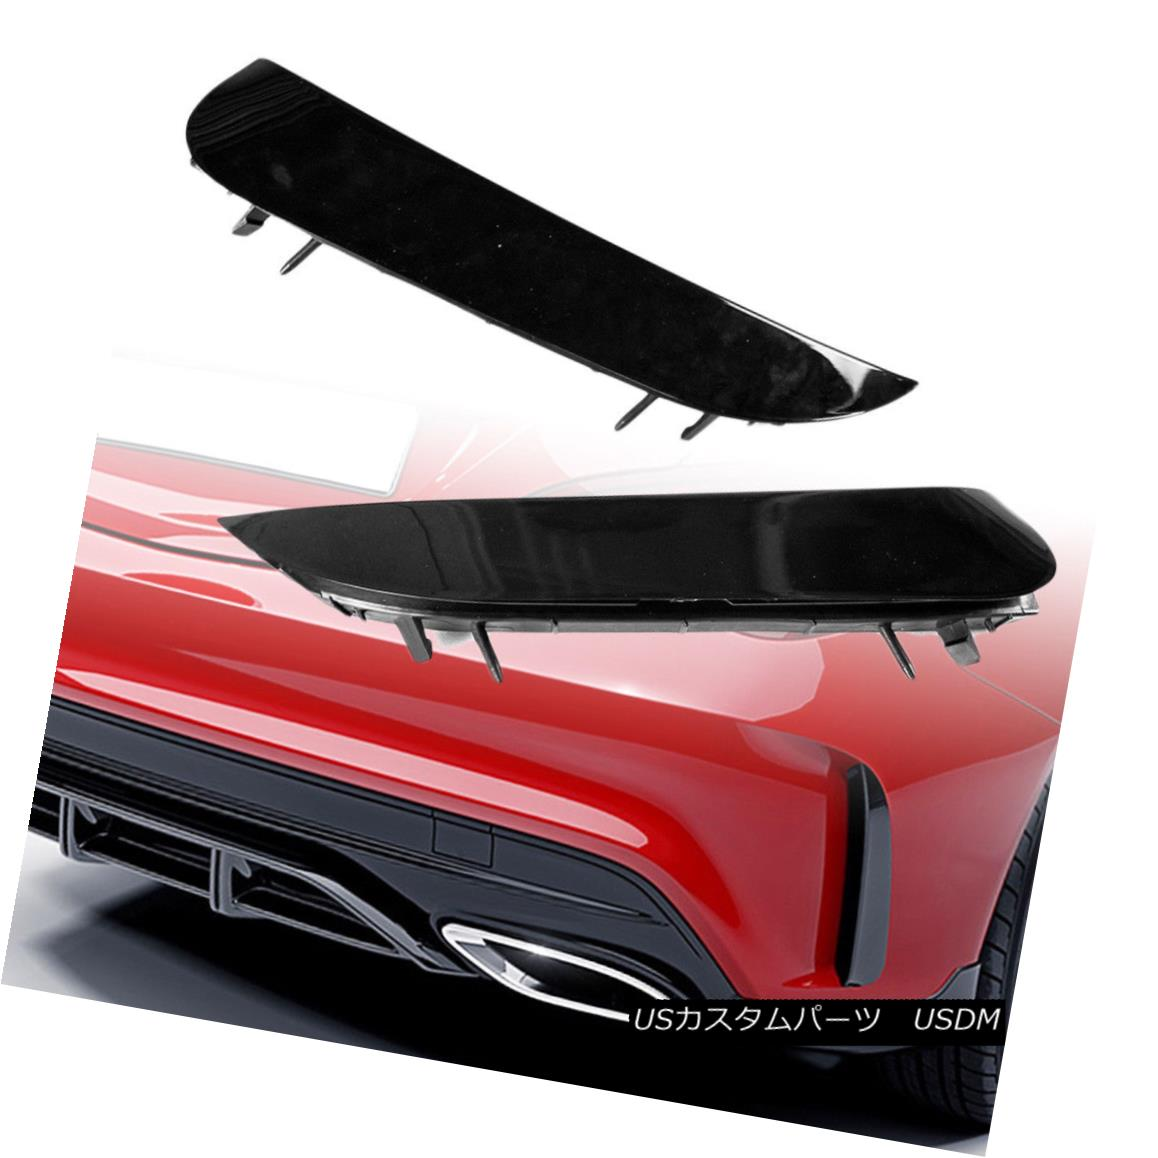 14 UNPAINTED ABS MERCEDES BENZ NEW CLA C117 A Style TRUNK SPOILER